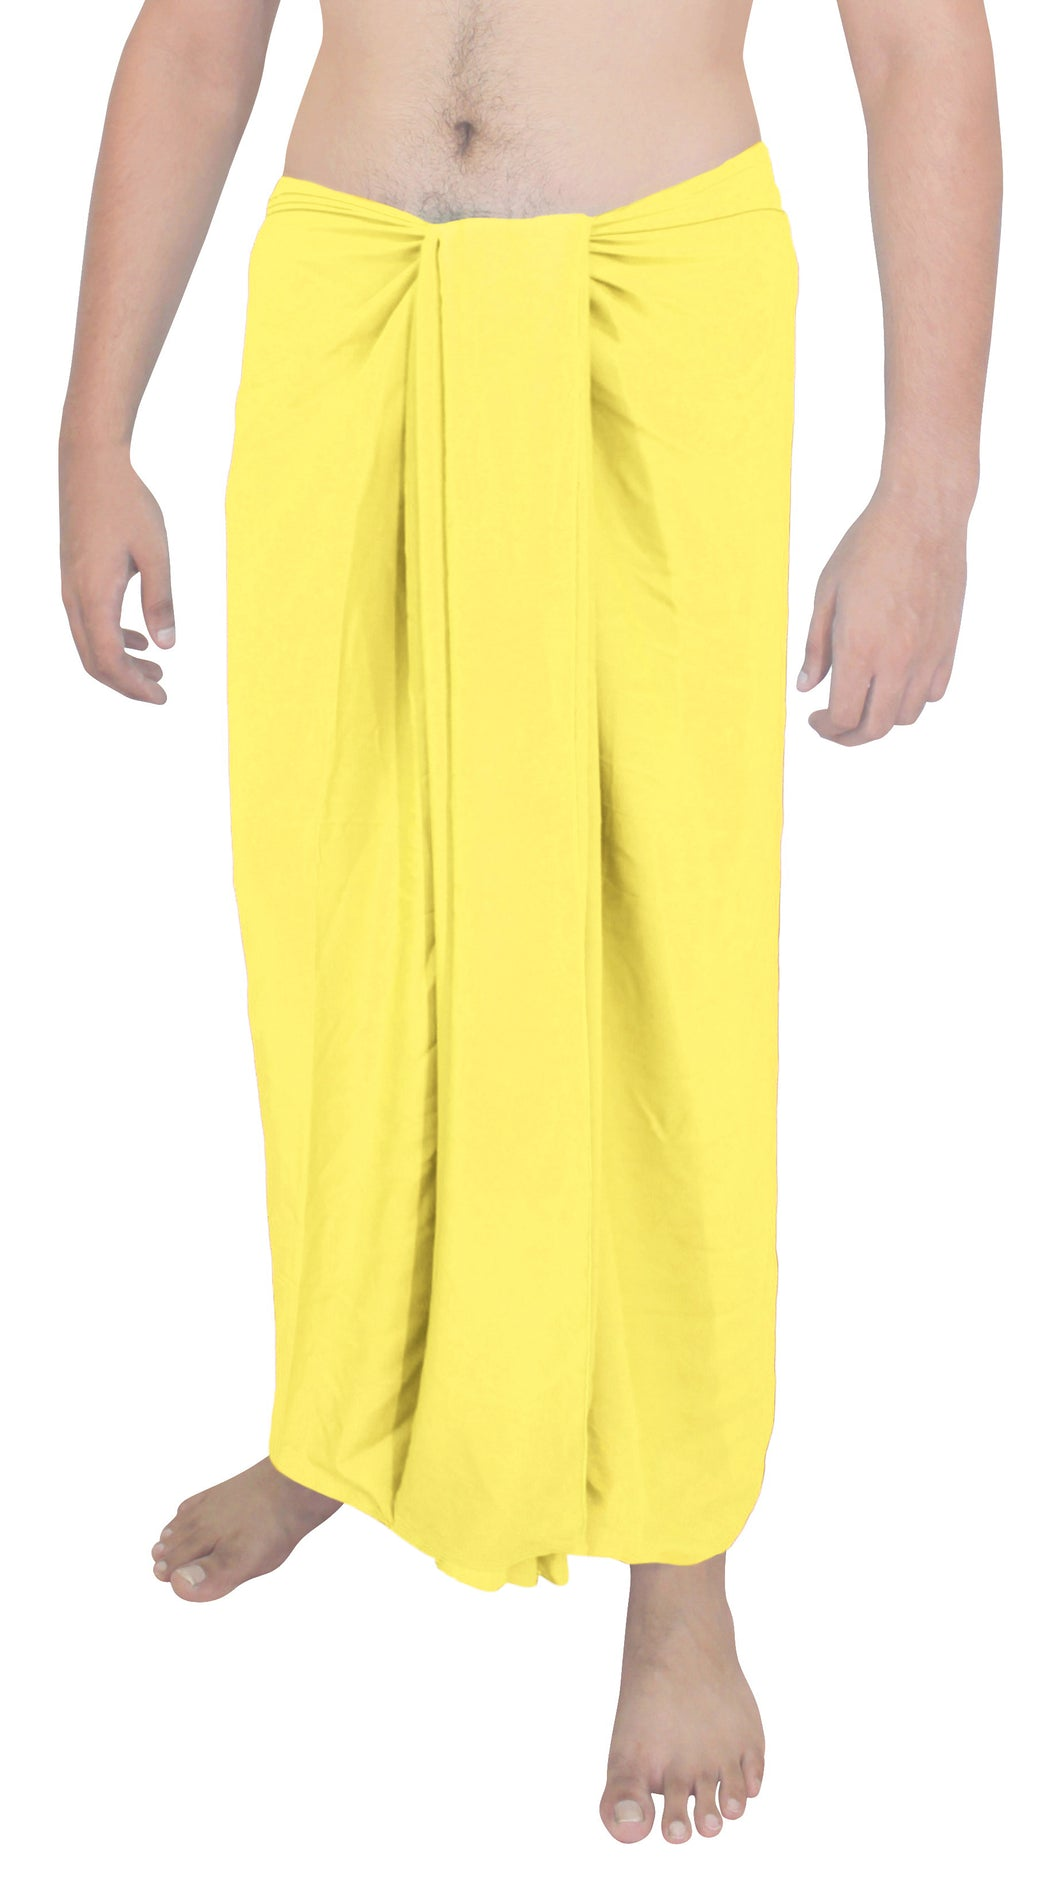 la-leela-men-sarong-rayon-solid-swimsuit-beach-pareo-towel-boys-wrap-78x39-yellow_6553